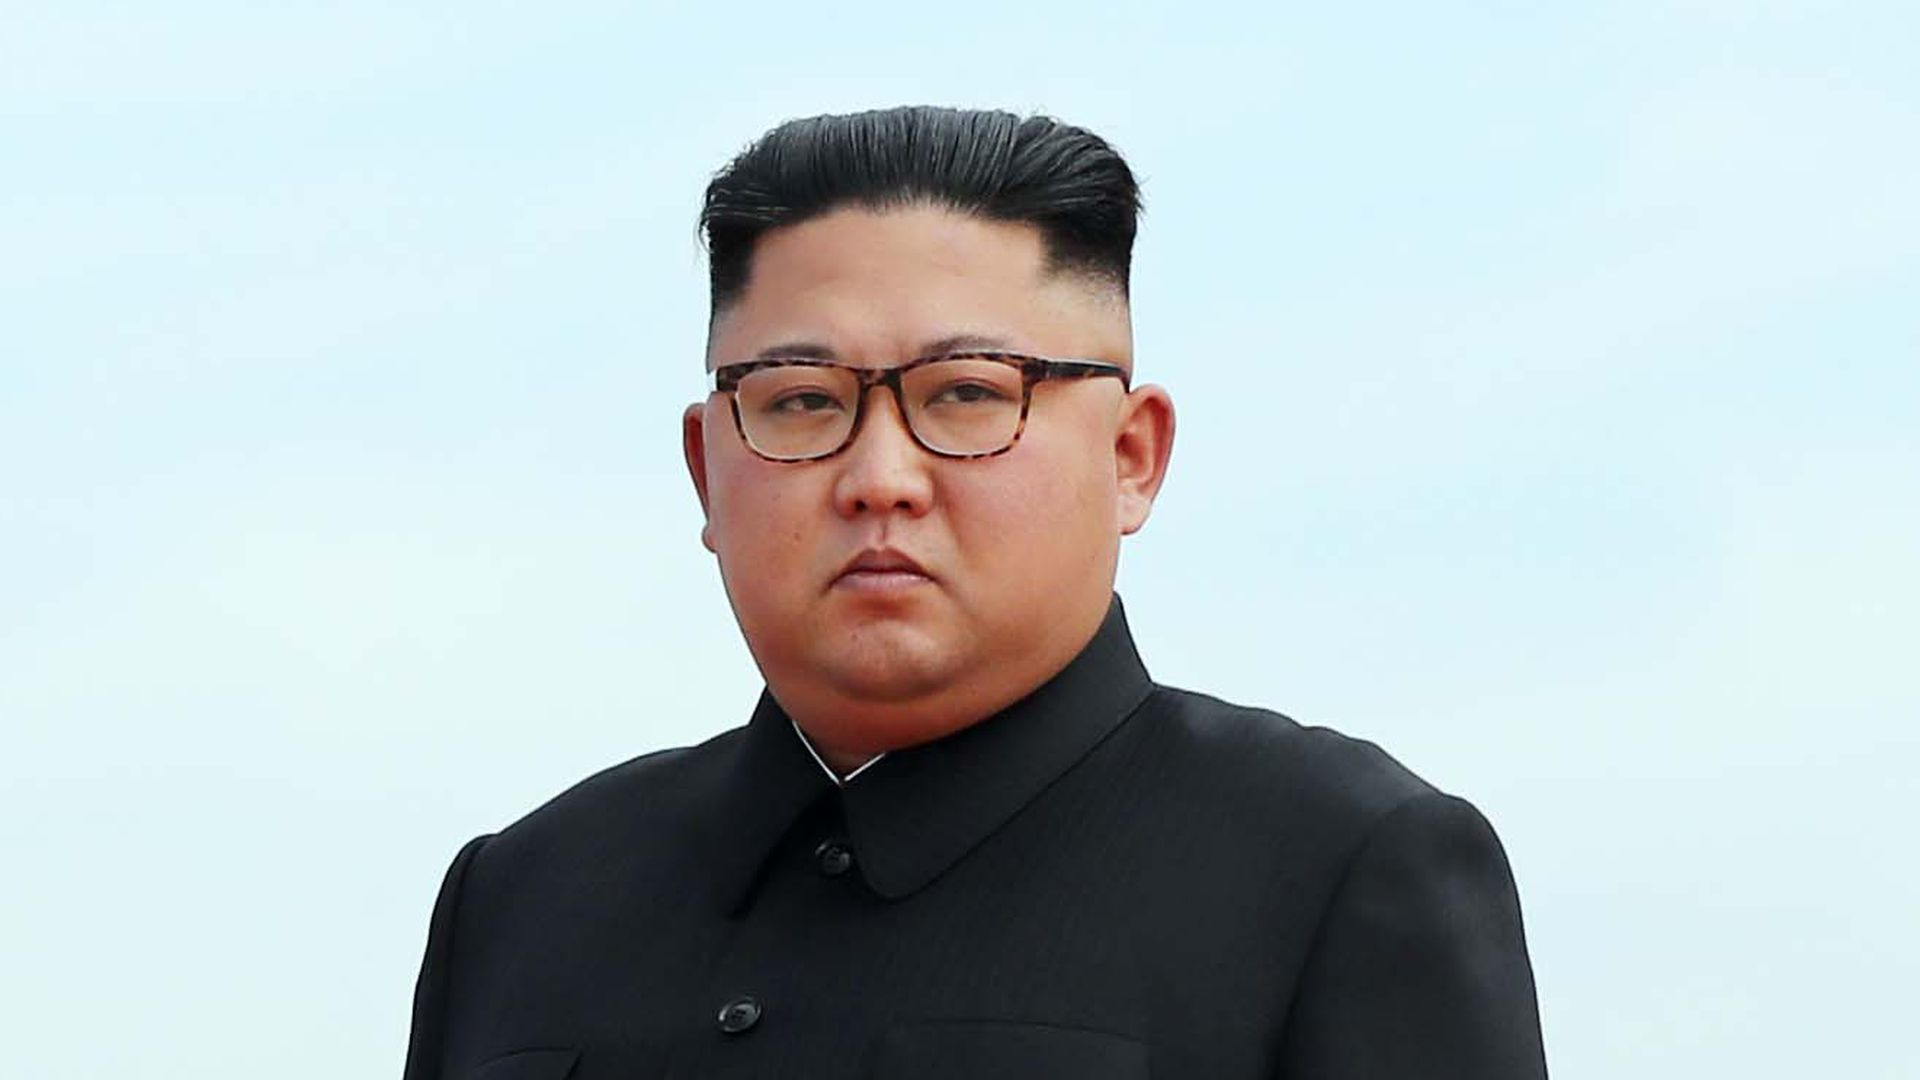 North Korean leader Kim Jong-un looks.